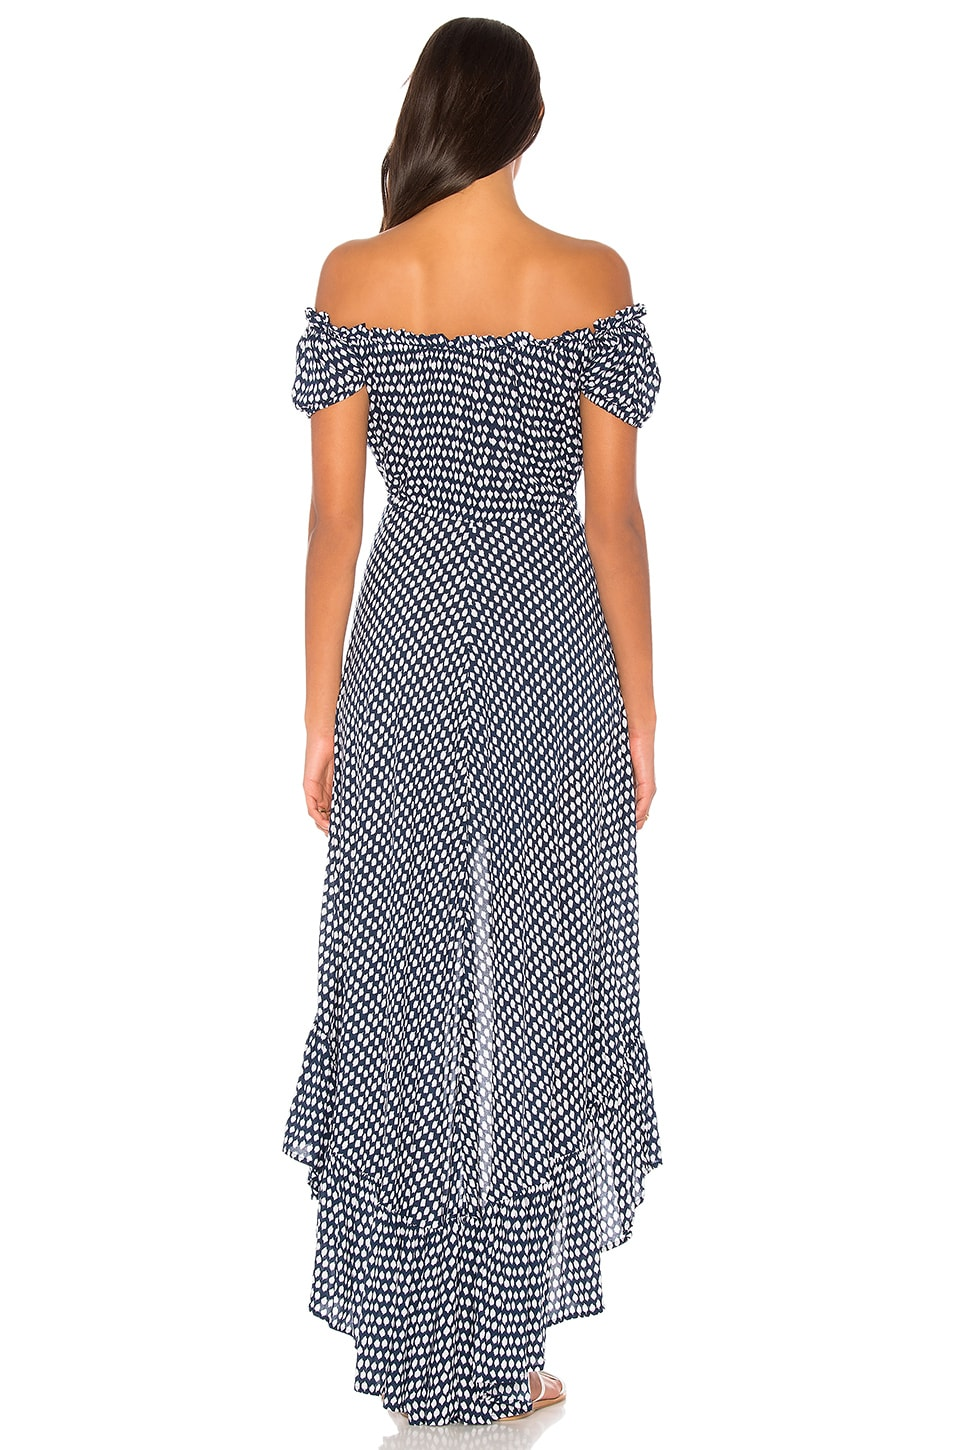 Riviera Maxi Dress, view 3, click to view large image.